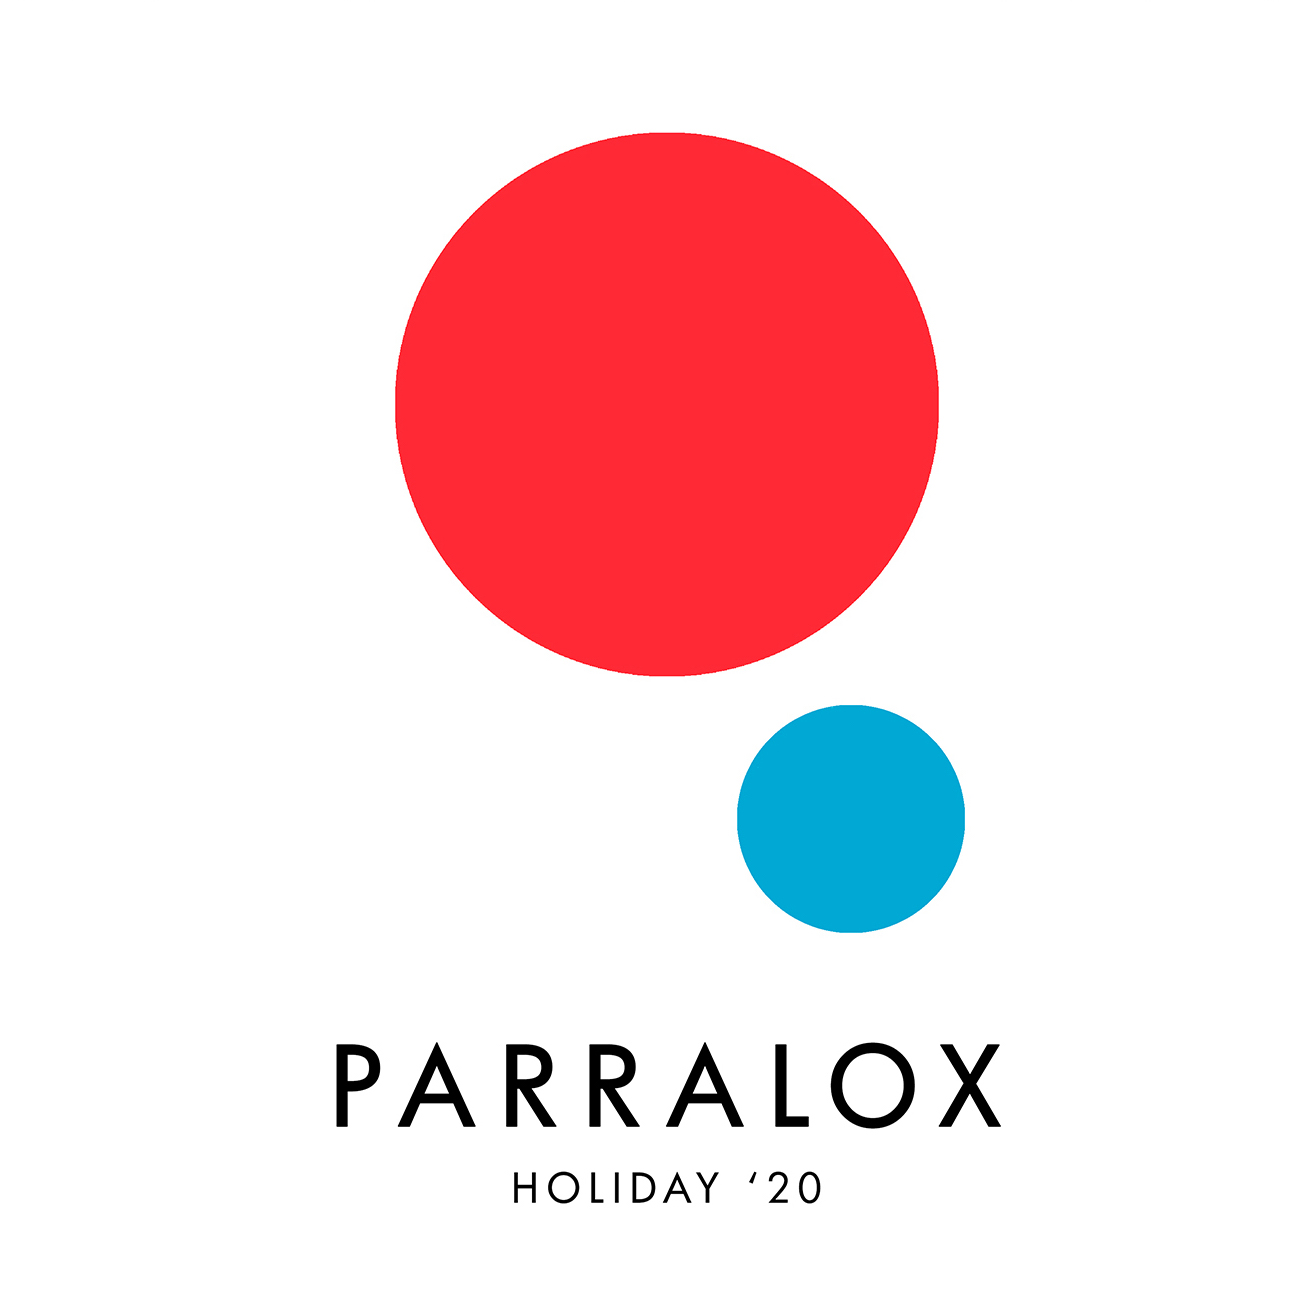 Parralox Holiday 20